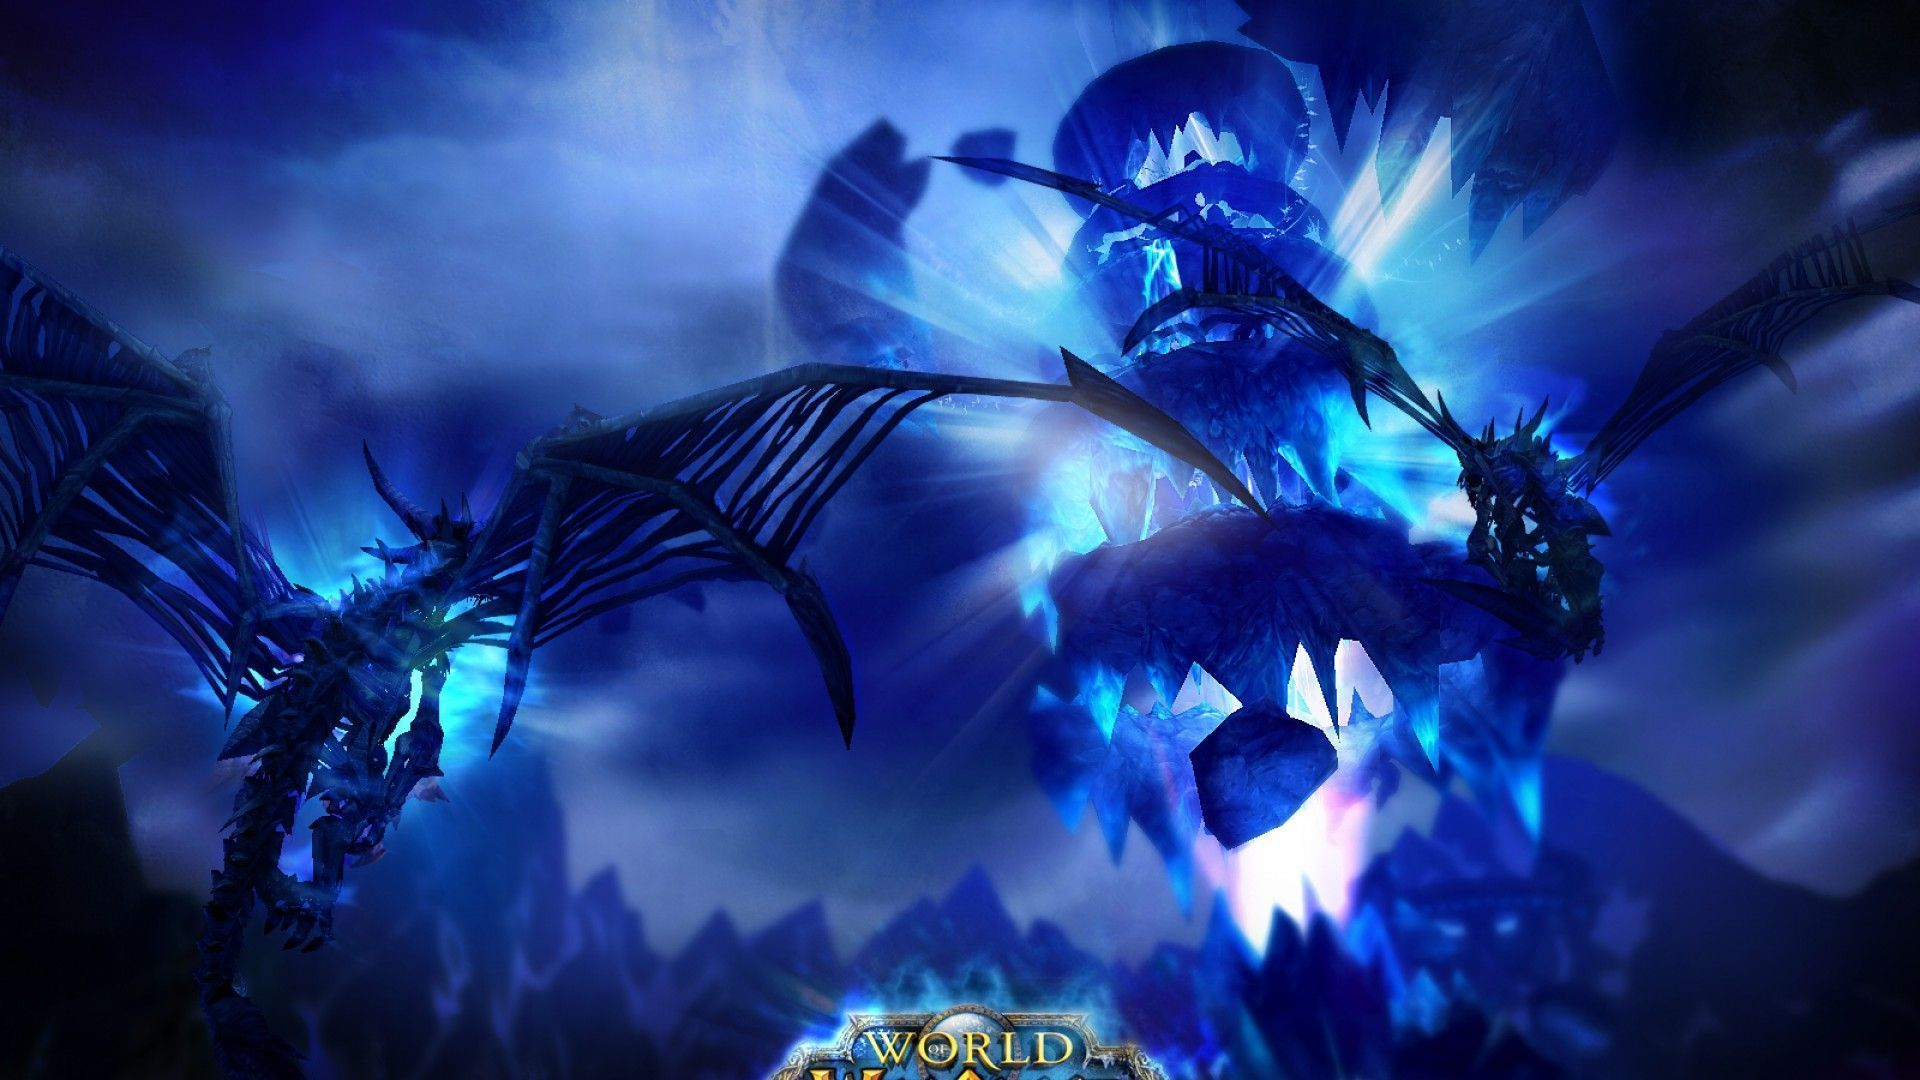 Cool World Warcraft Pic In Hd Widescreen